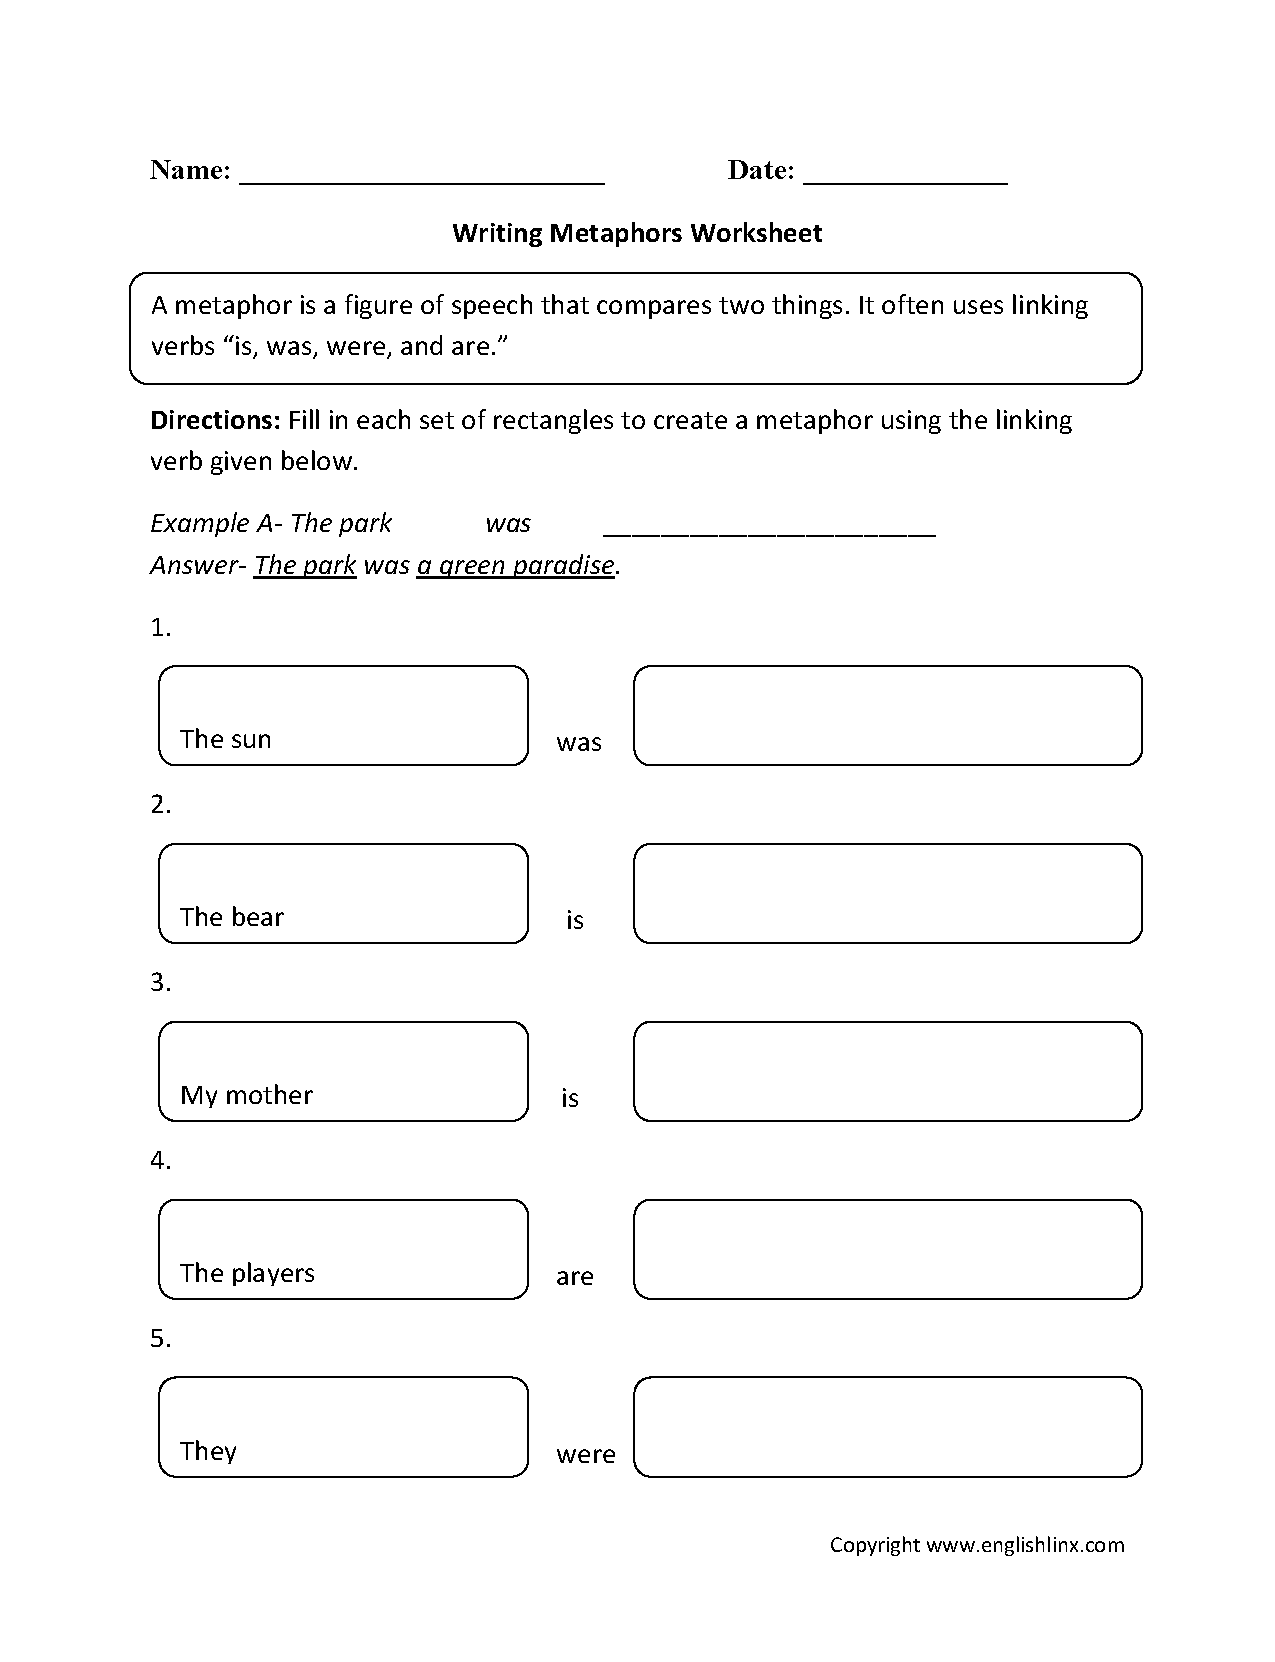 worksheet Similes And Metaphors Ks2 Worksheets englishlinx com metaphors worksheets grades k 5 worksheets